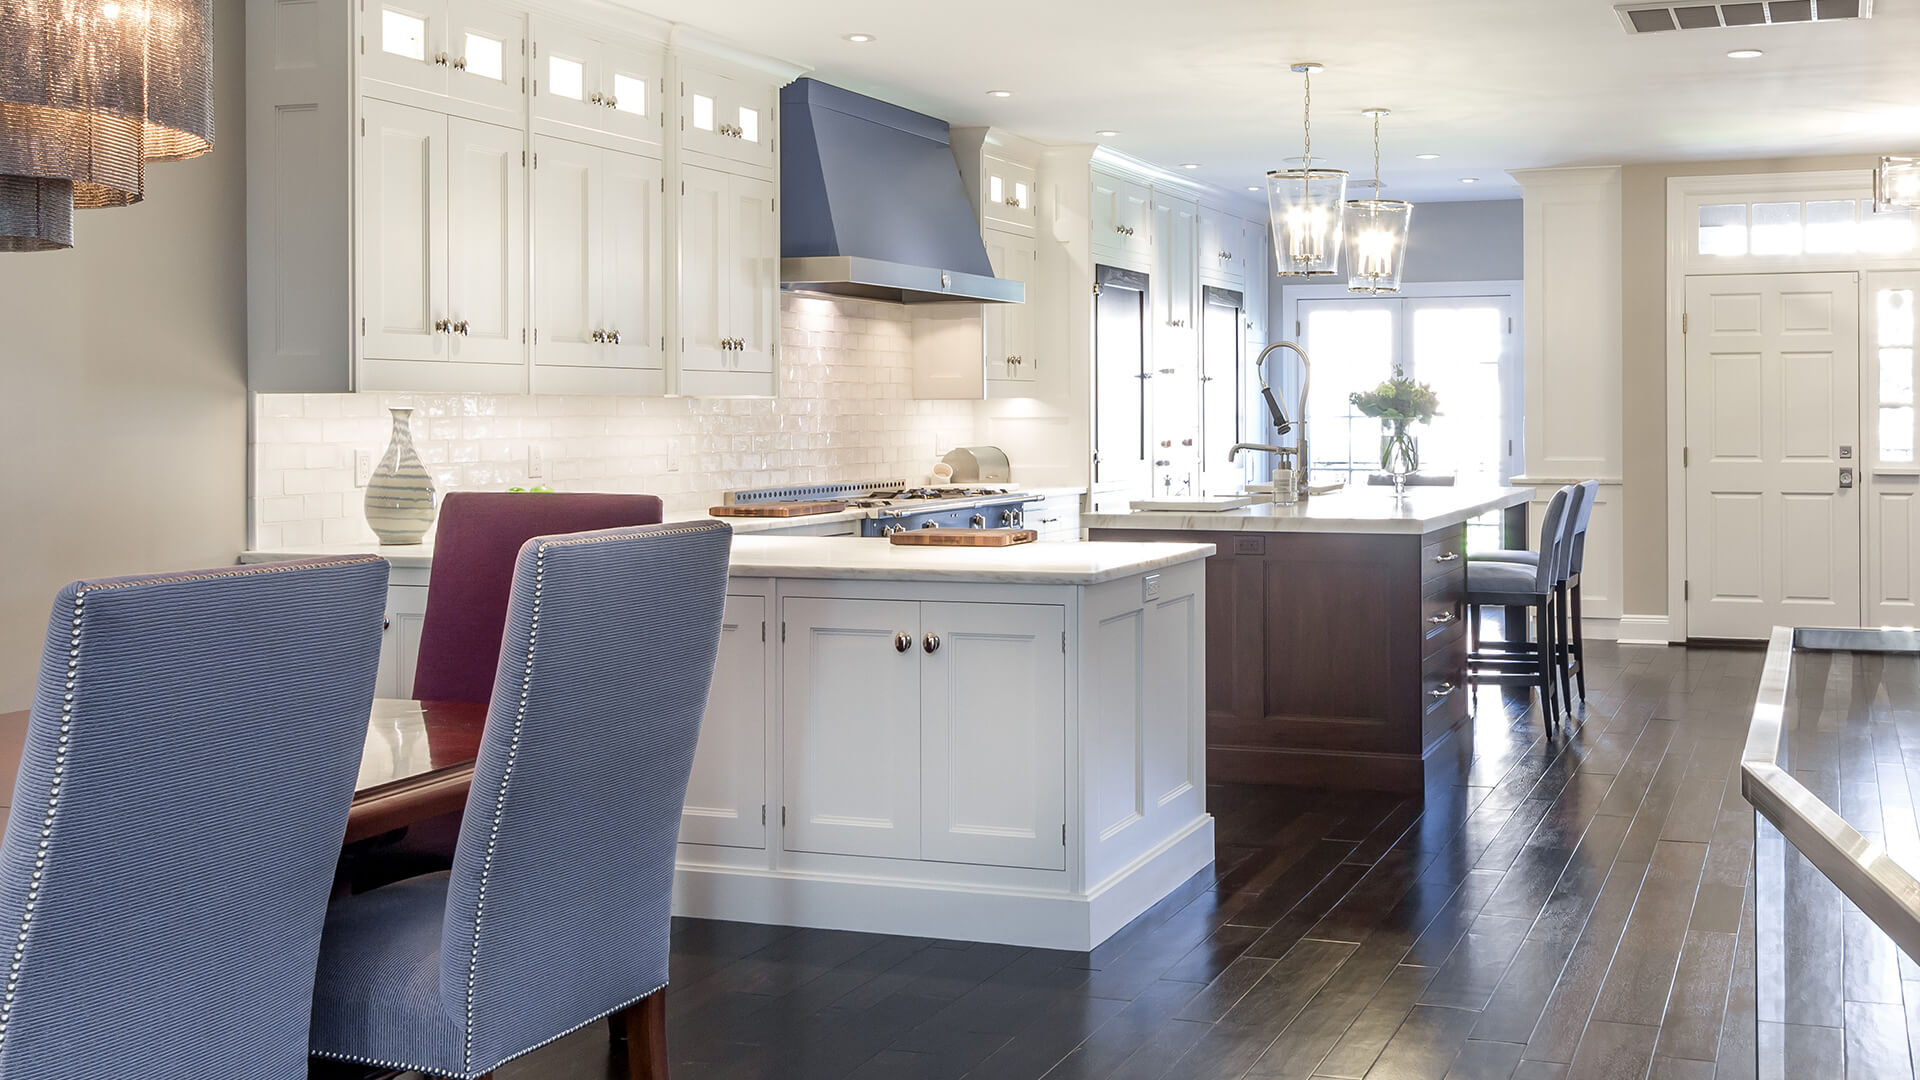 Upscale Custom kitchen with white handcrafted cabinets, stained walnut island, polished nickel finishes, and recessed lighting